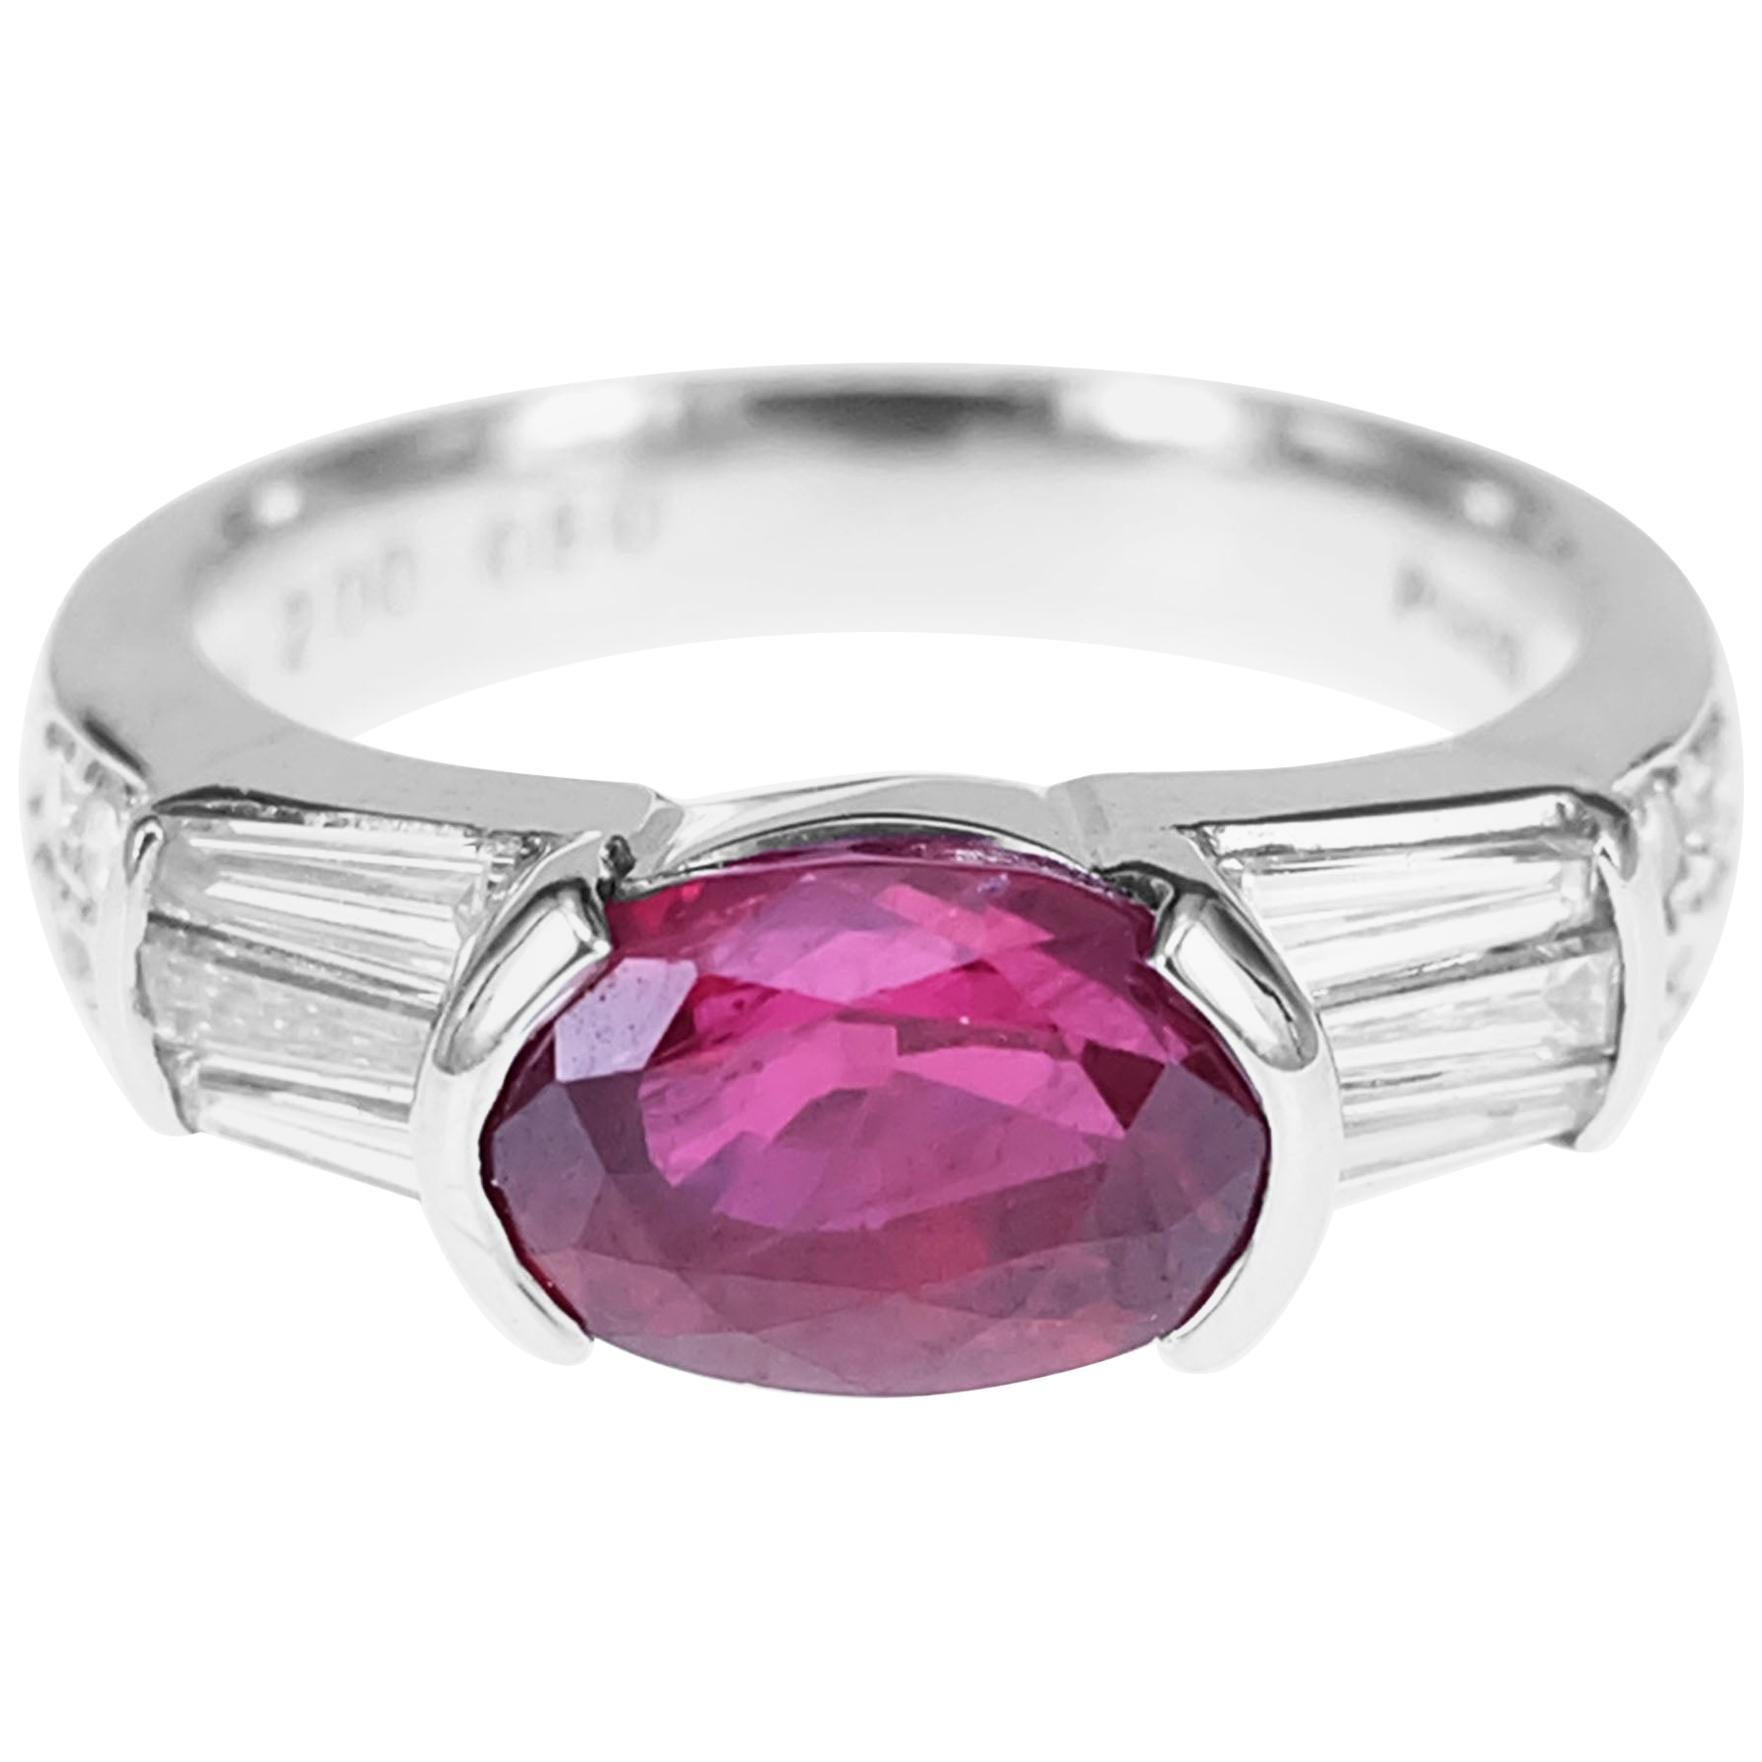 CGL Certified 2.00 Carat Vivid Red Ruby Diamond PT900 Solitaire Ring